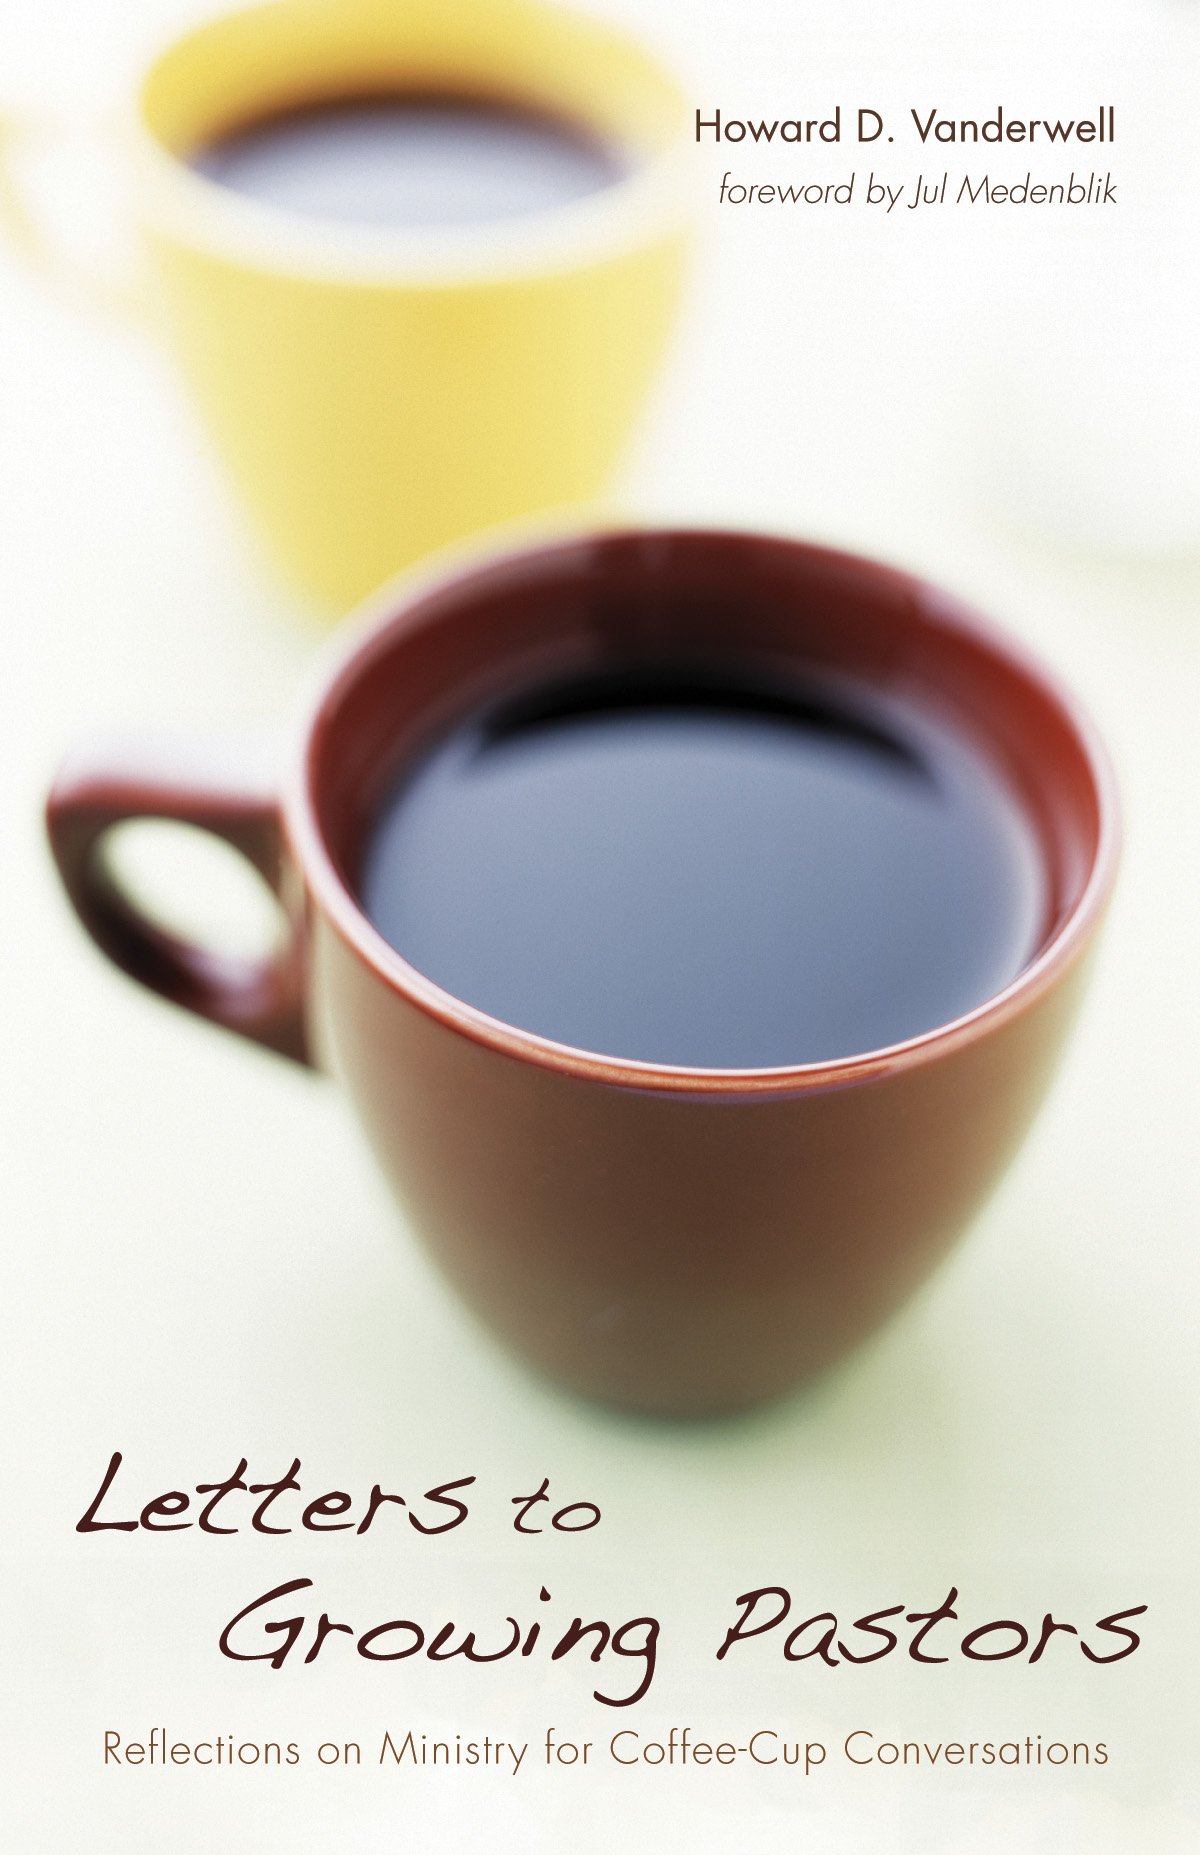 Letters to Growing Pastors: Reflections on Ministry for Coffee-Cup Conversation